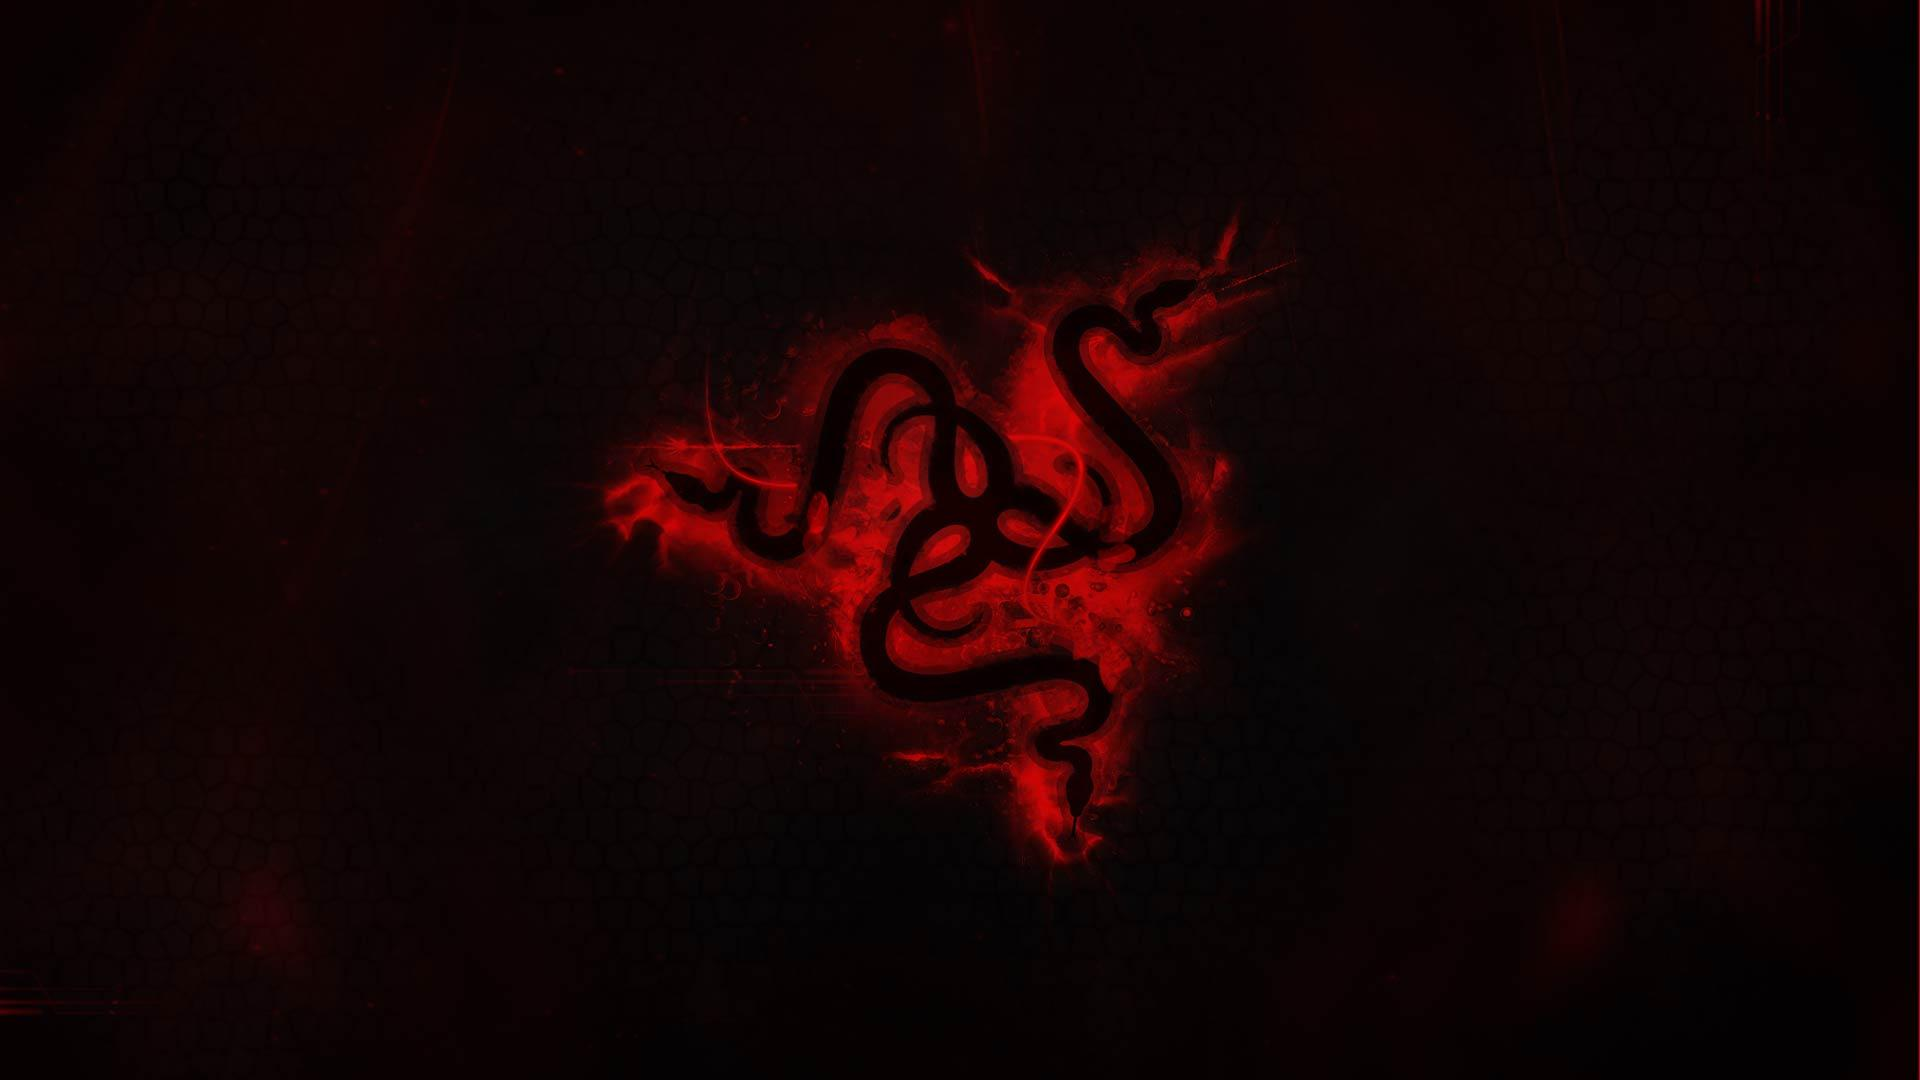 Razer Wallpapers Hd Red Wallpaper Cave